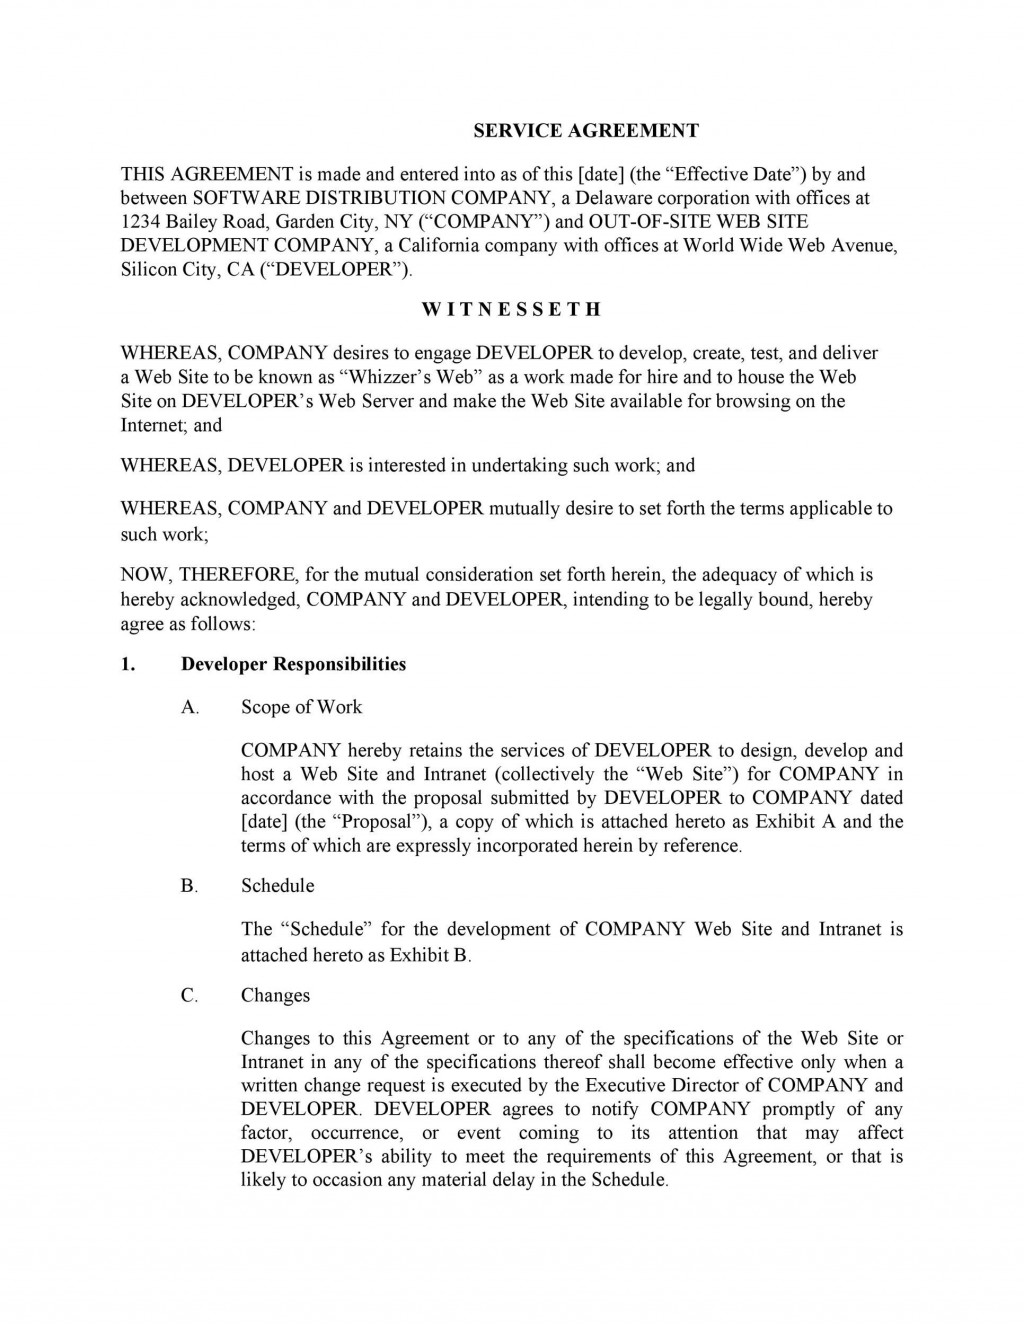 009 Stunning It Service Contract Template Sample  Support Agreement Provider South Africa Managed ExampleLarge